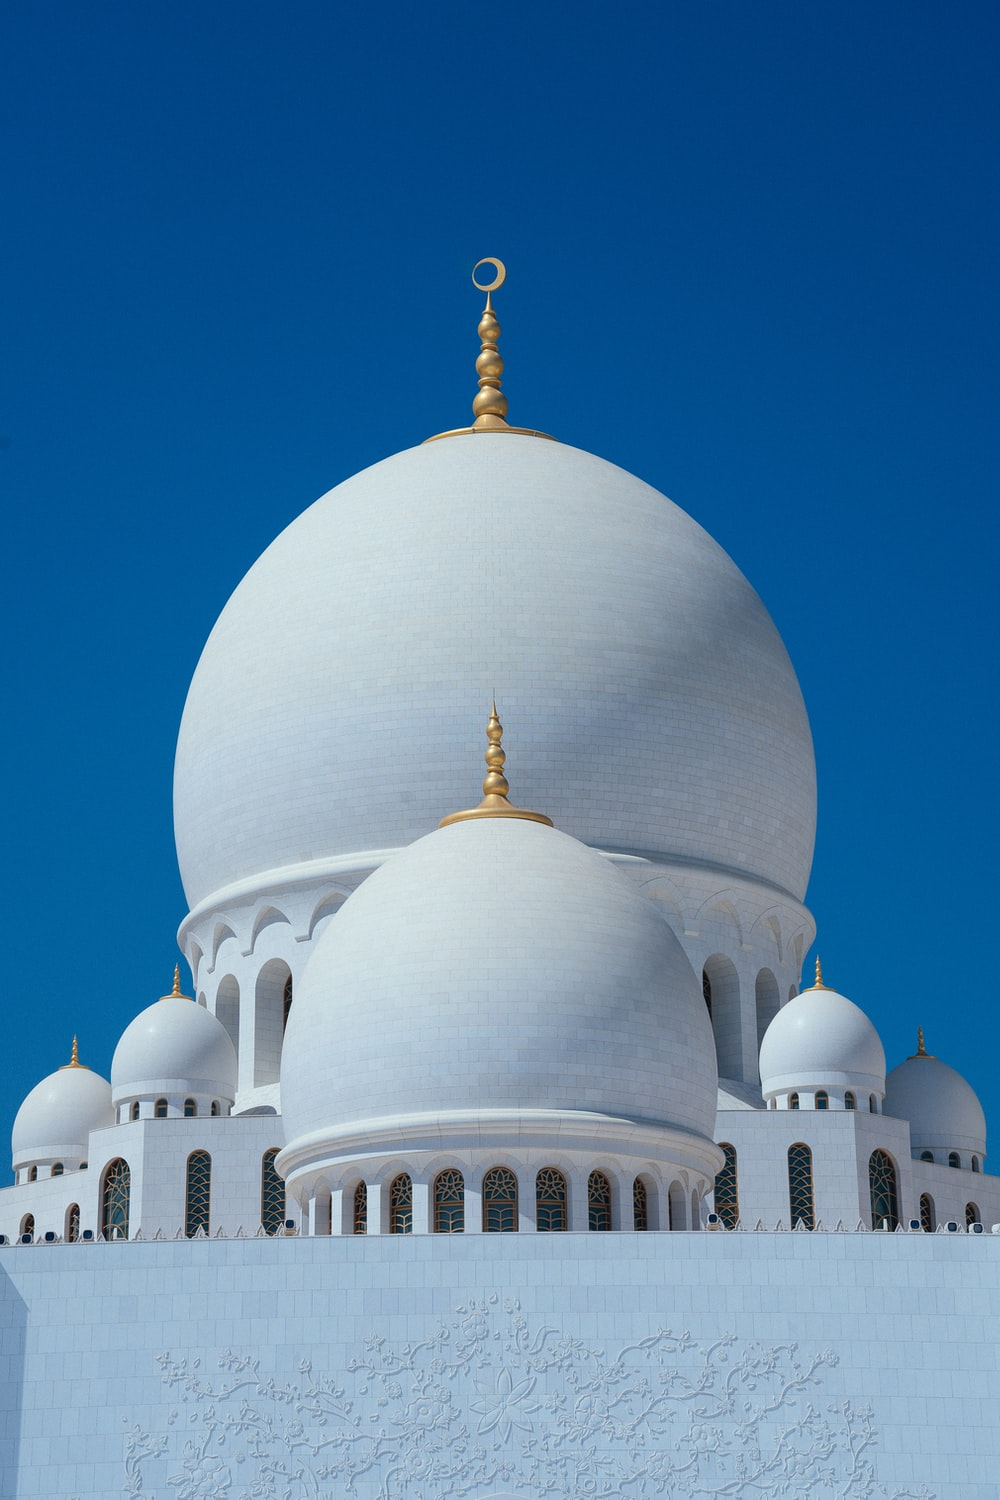 white concrete dome building under blue sky during daytime